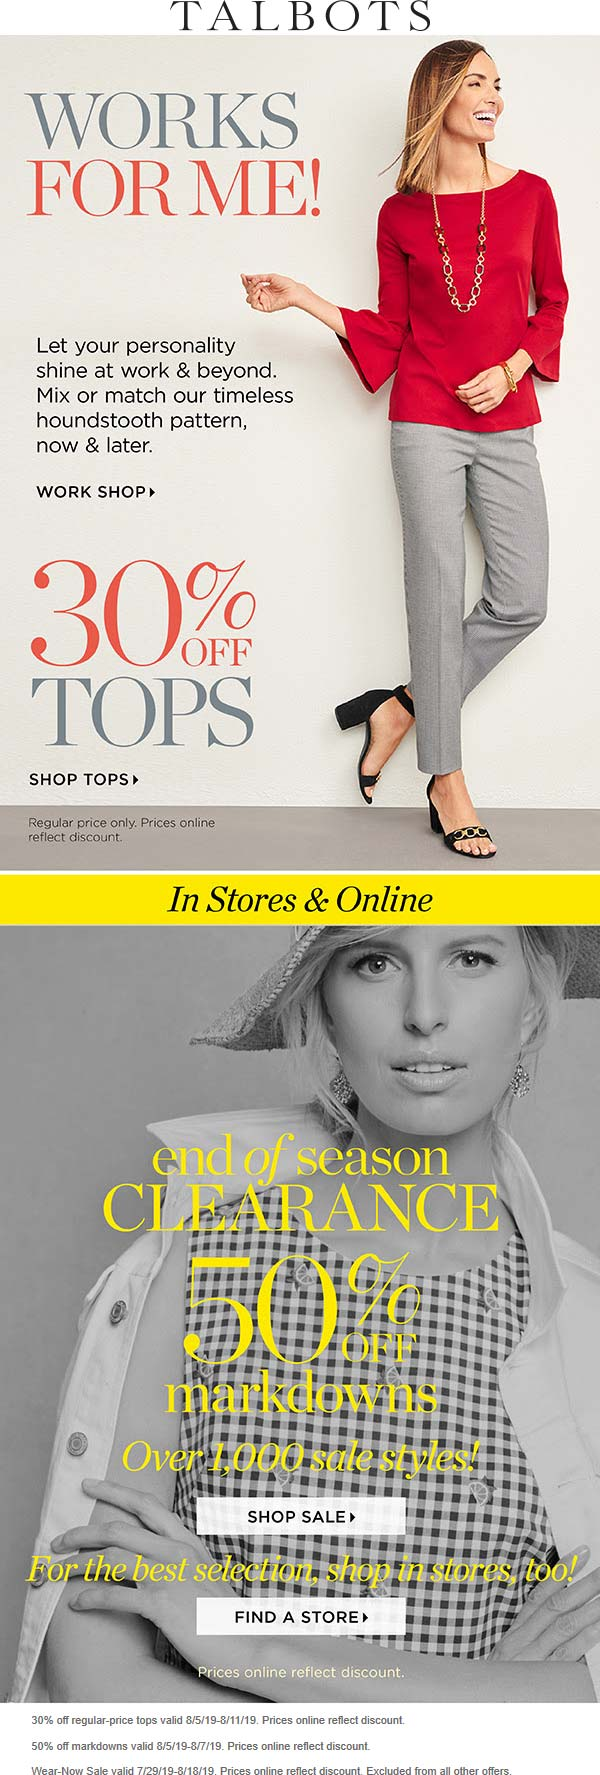 Talbots.com Promo Coupon 30% off tops & 50% off sale items at Talbots, ditto online